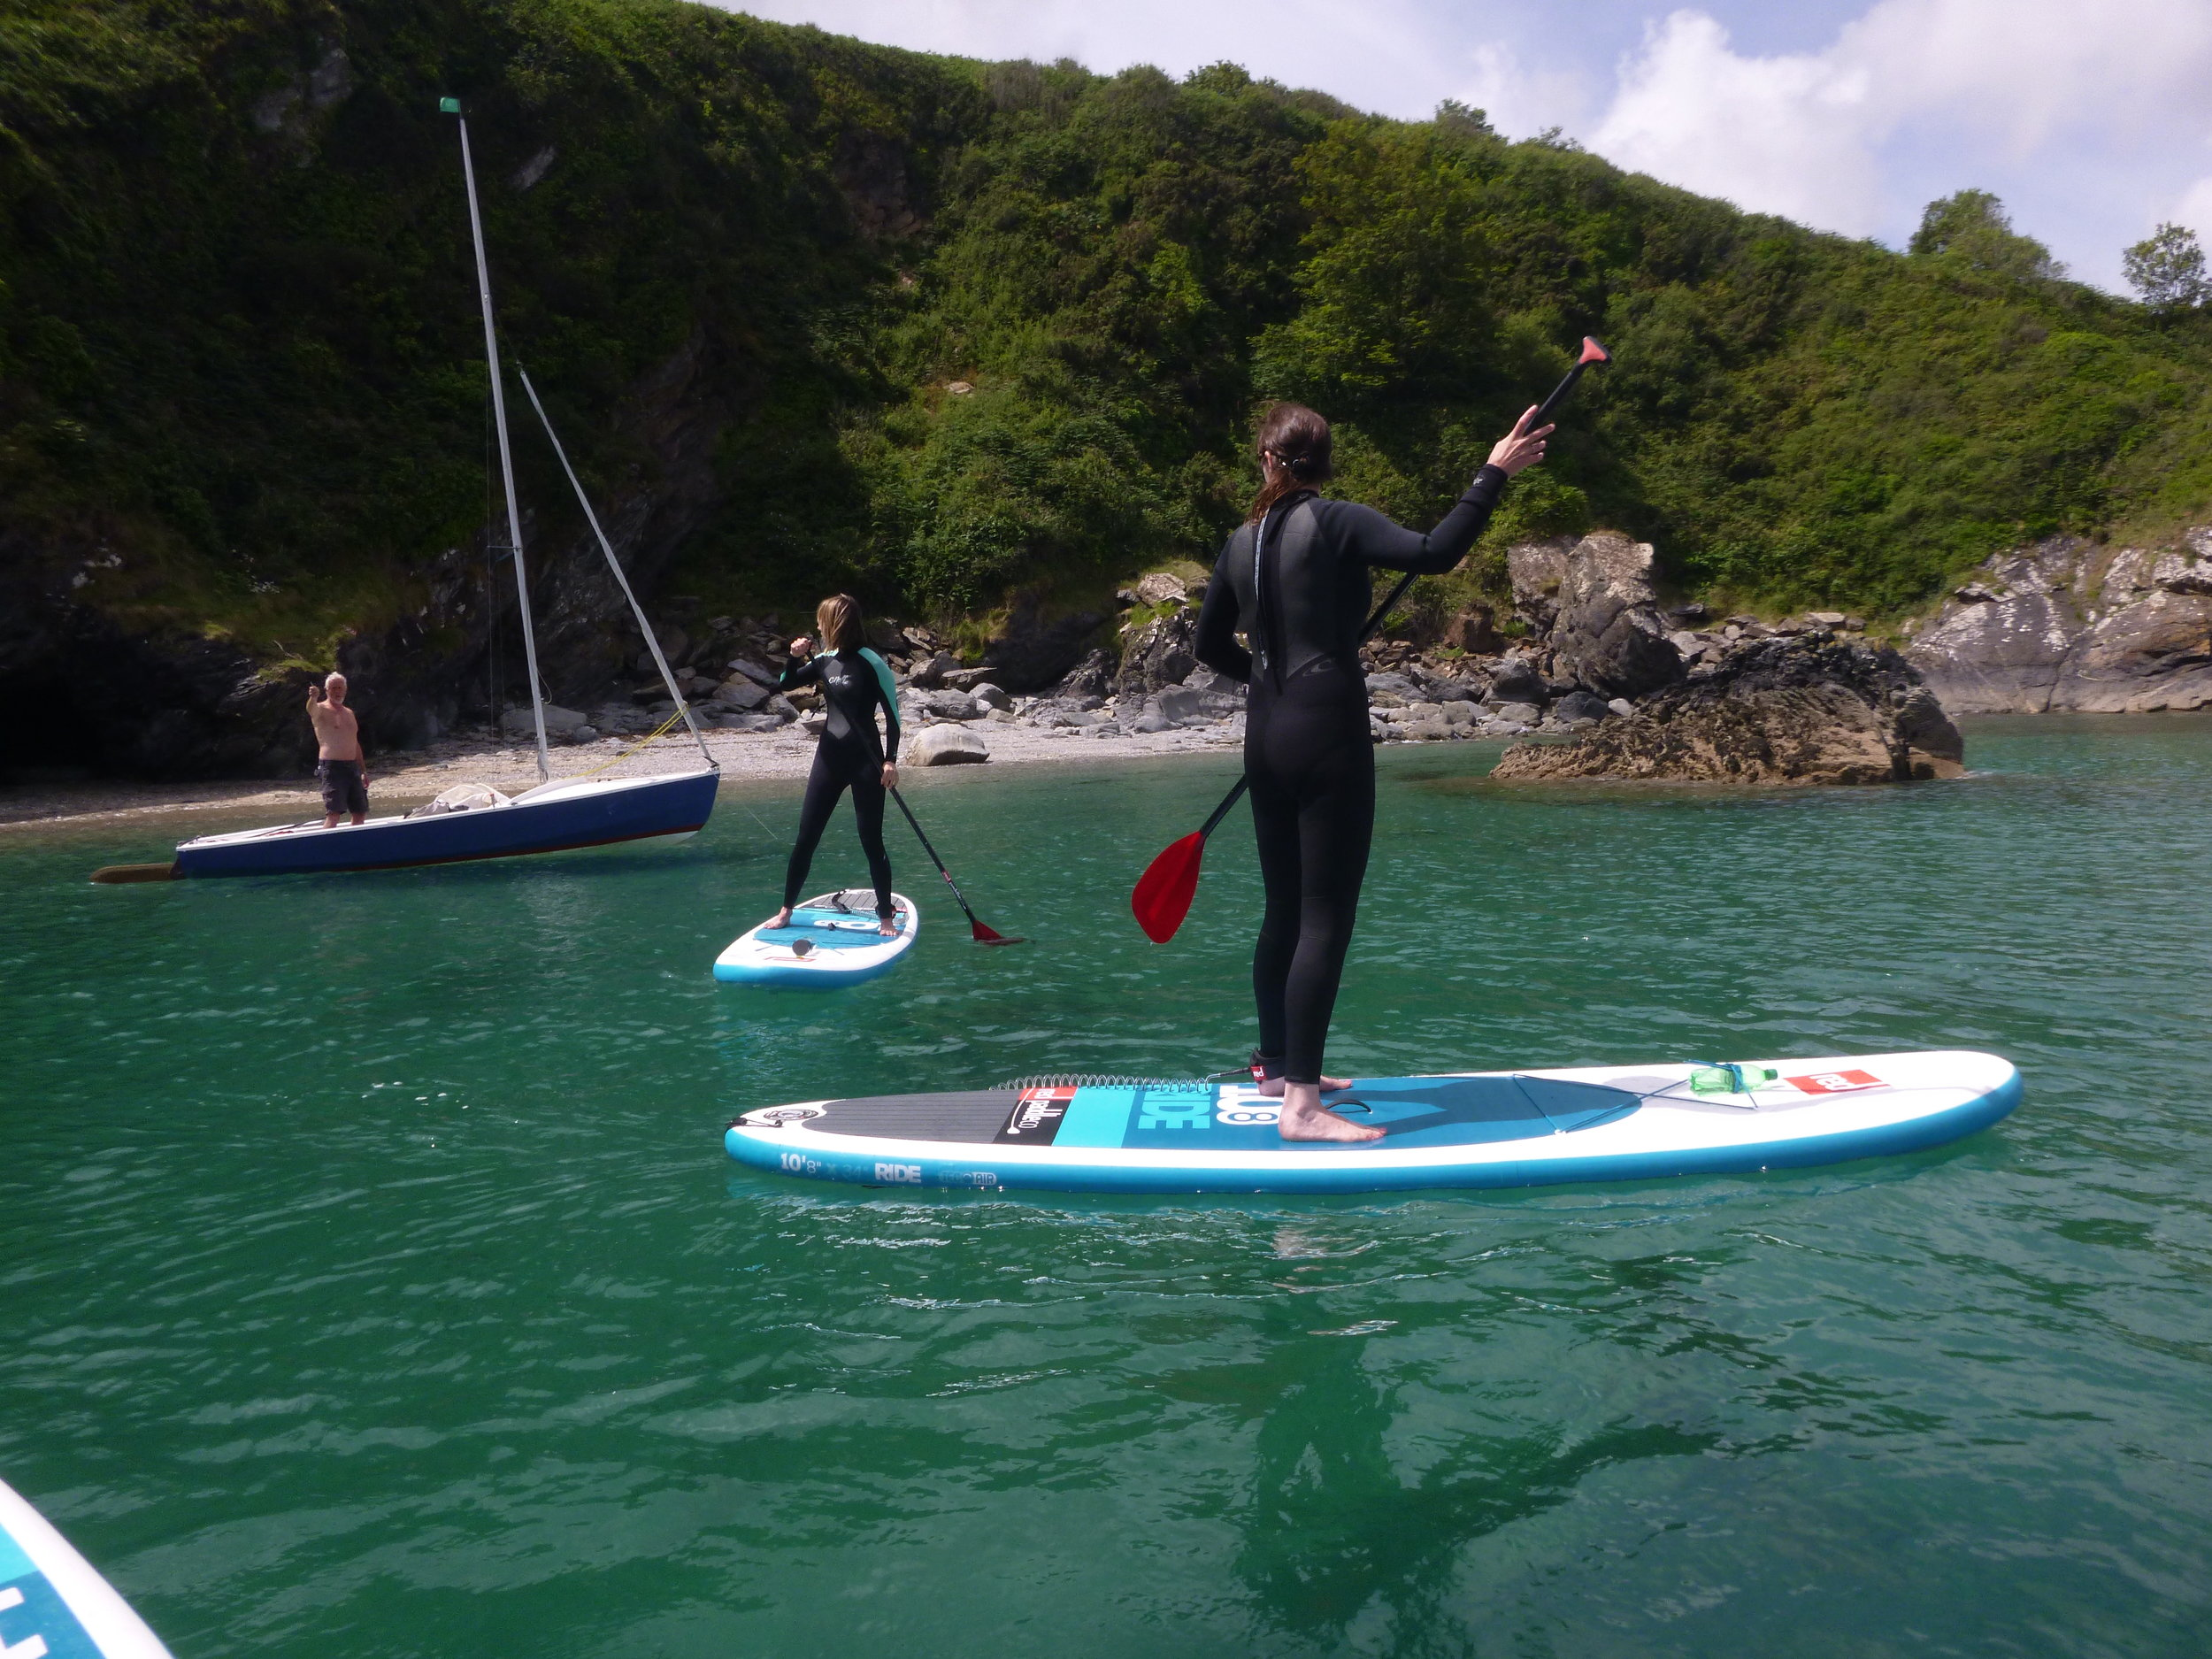 Chatting to the locals. Clear waters and stunning views paddle boarding from Maenporth one of the family friendly Falmouth beaches.